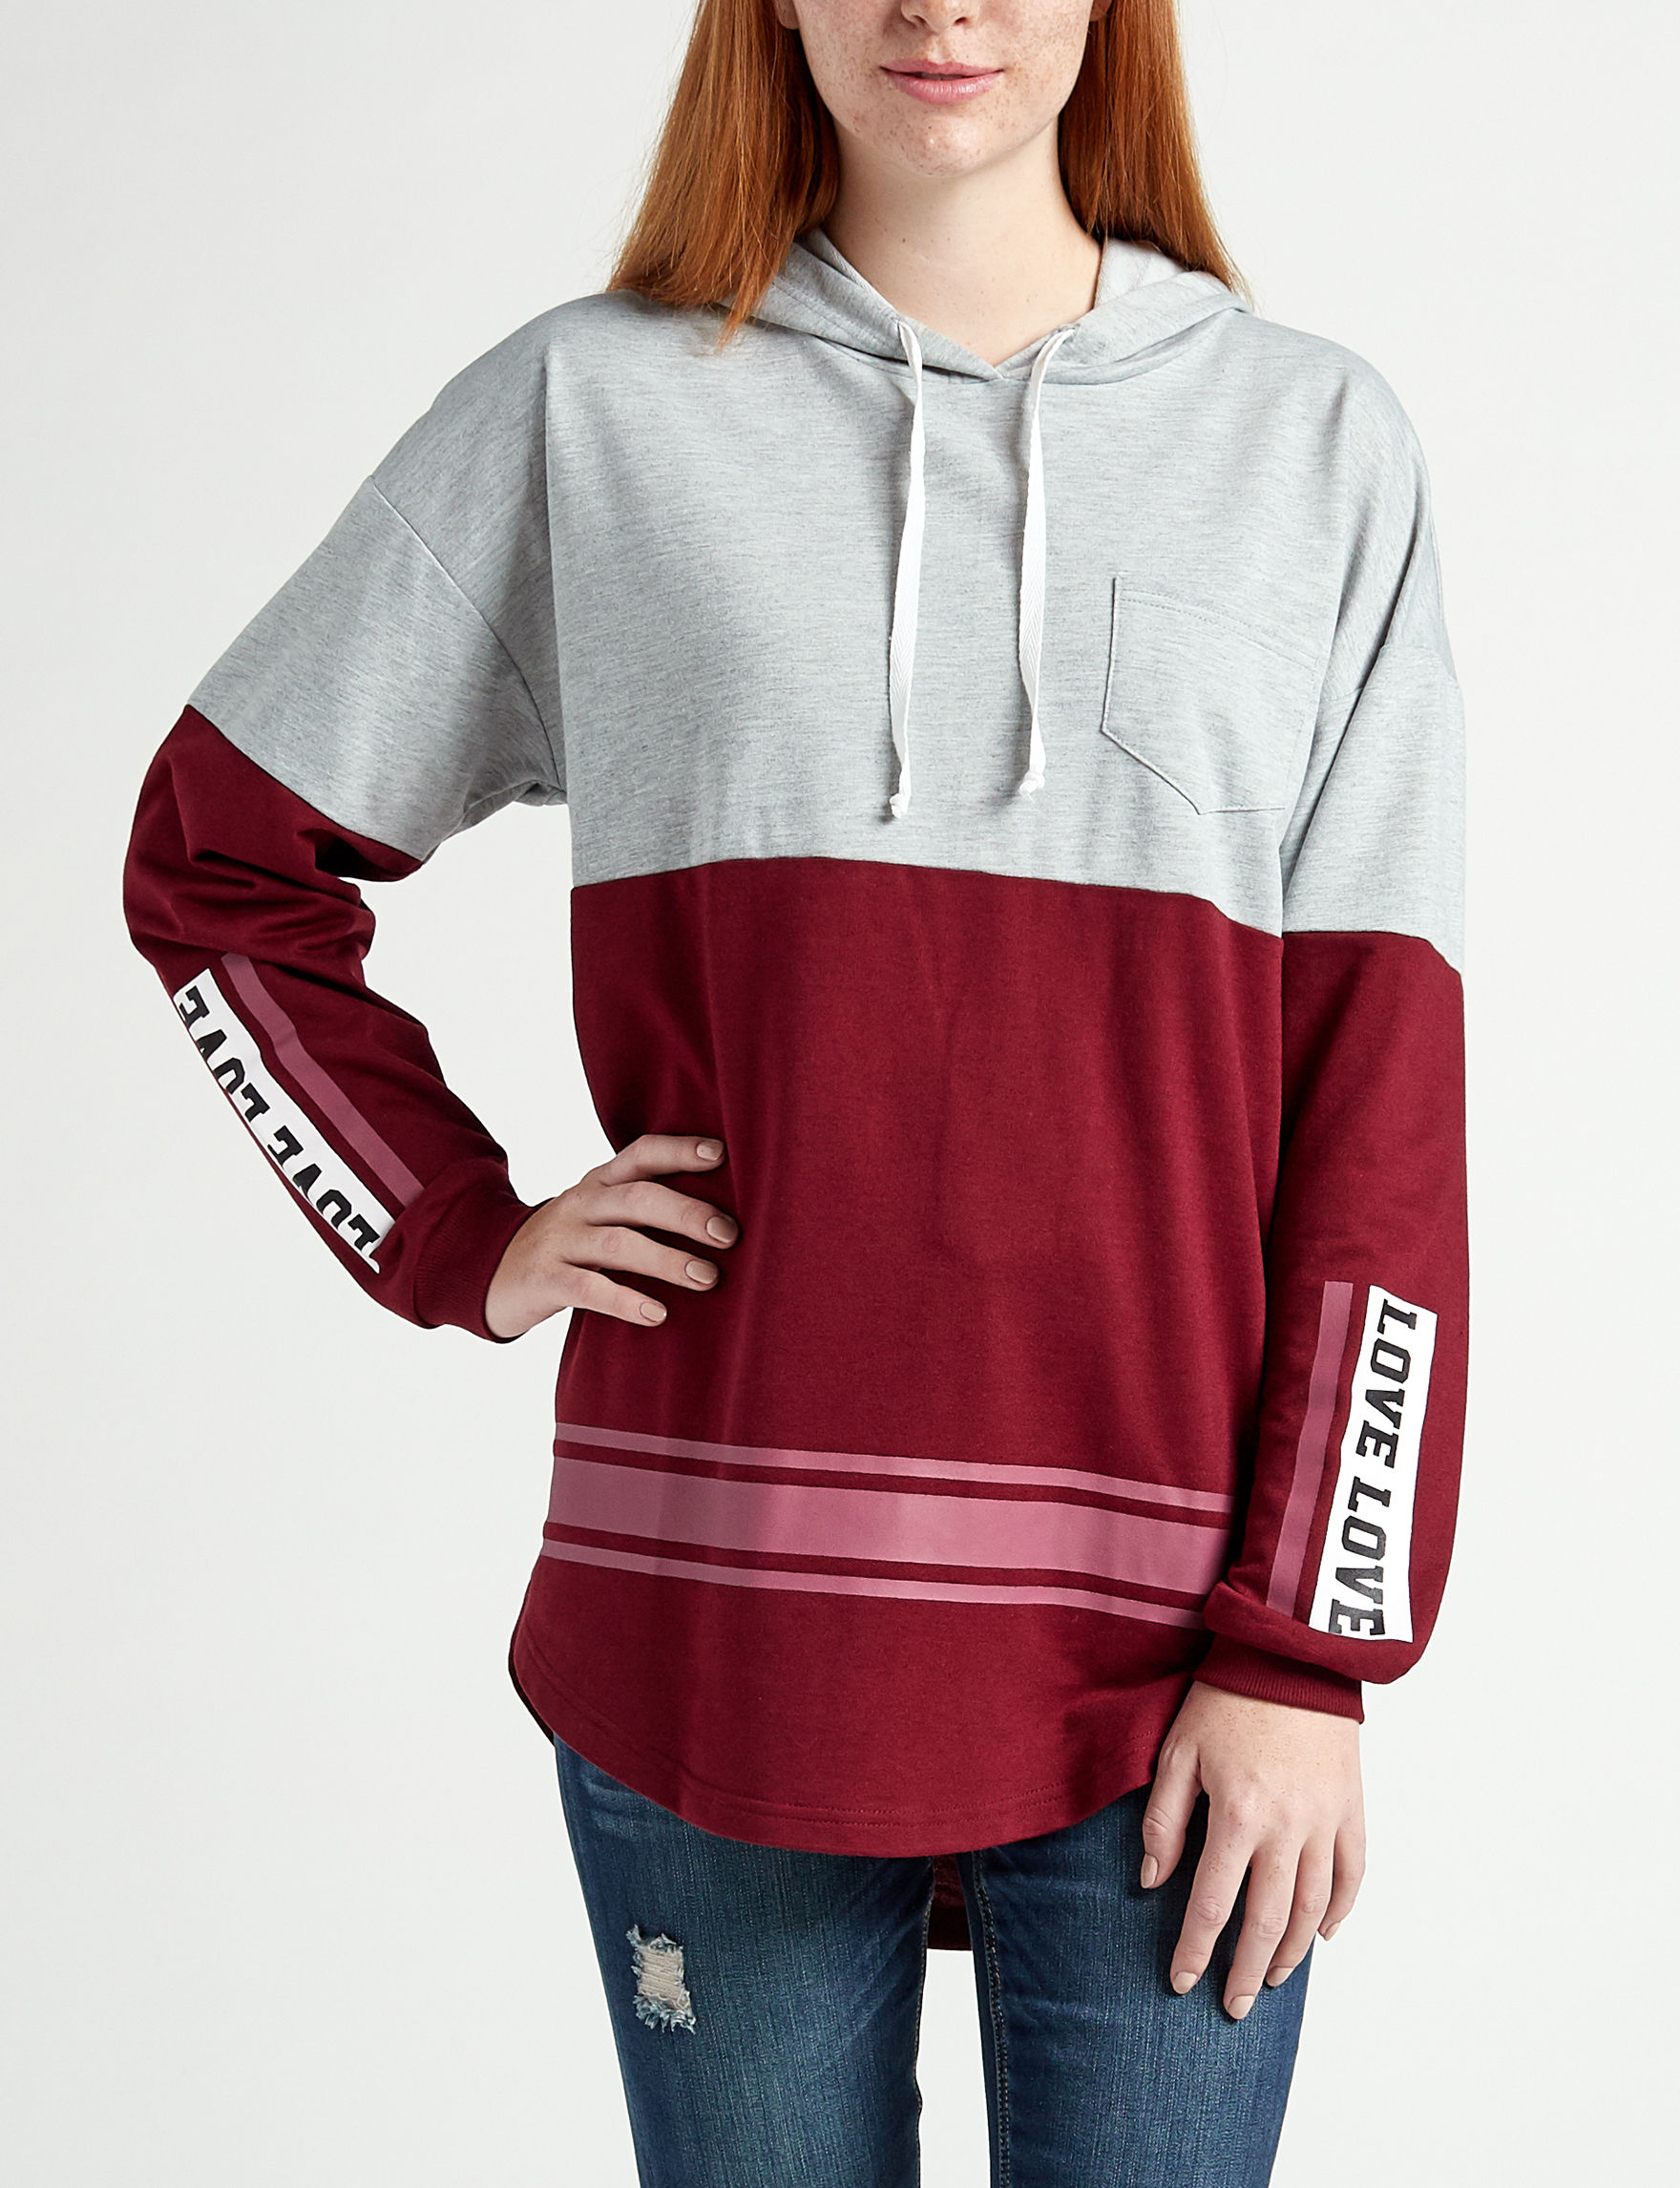 Justify Grey / Maroon Pull-overs